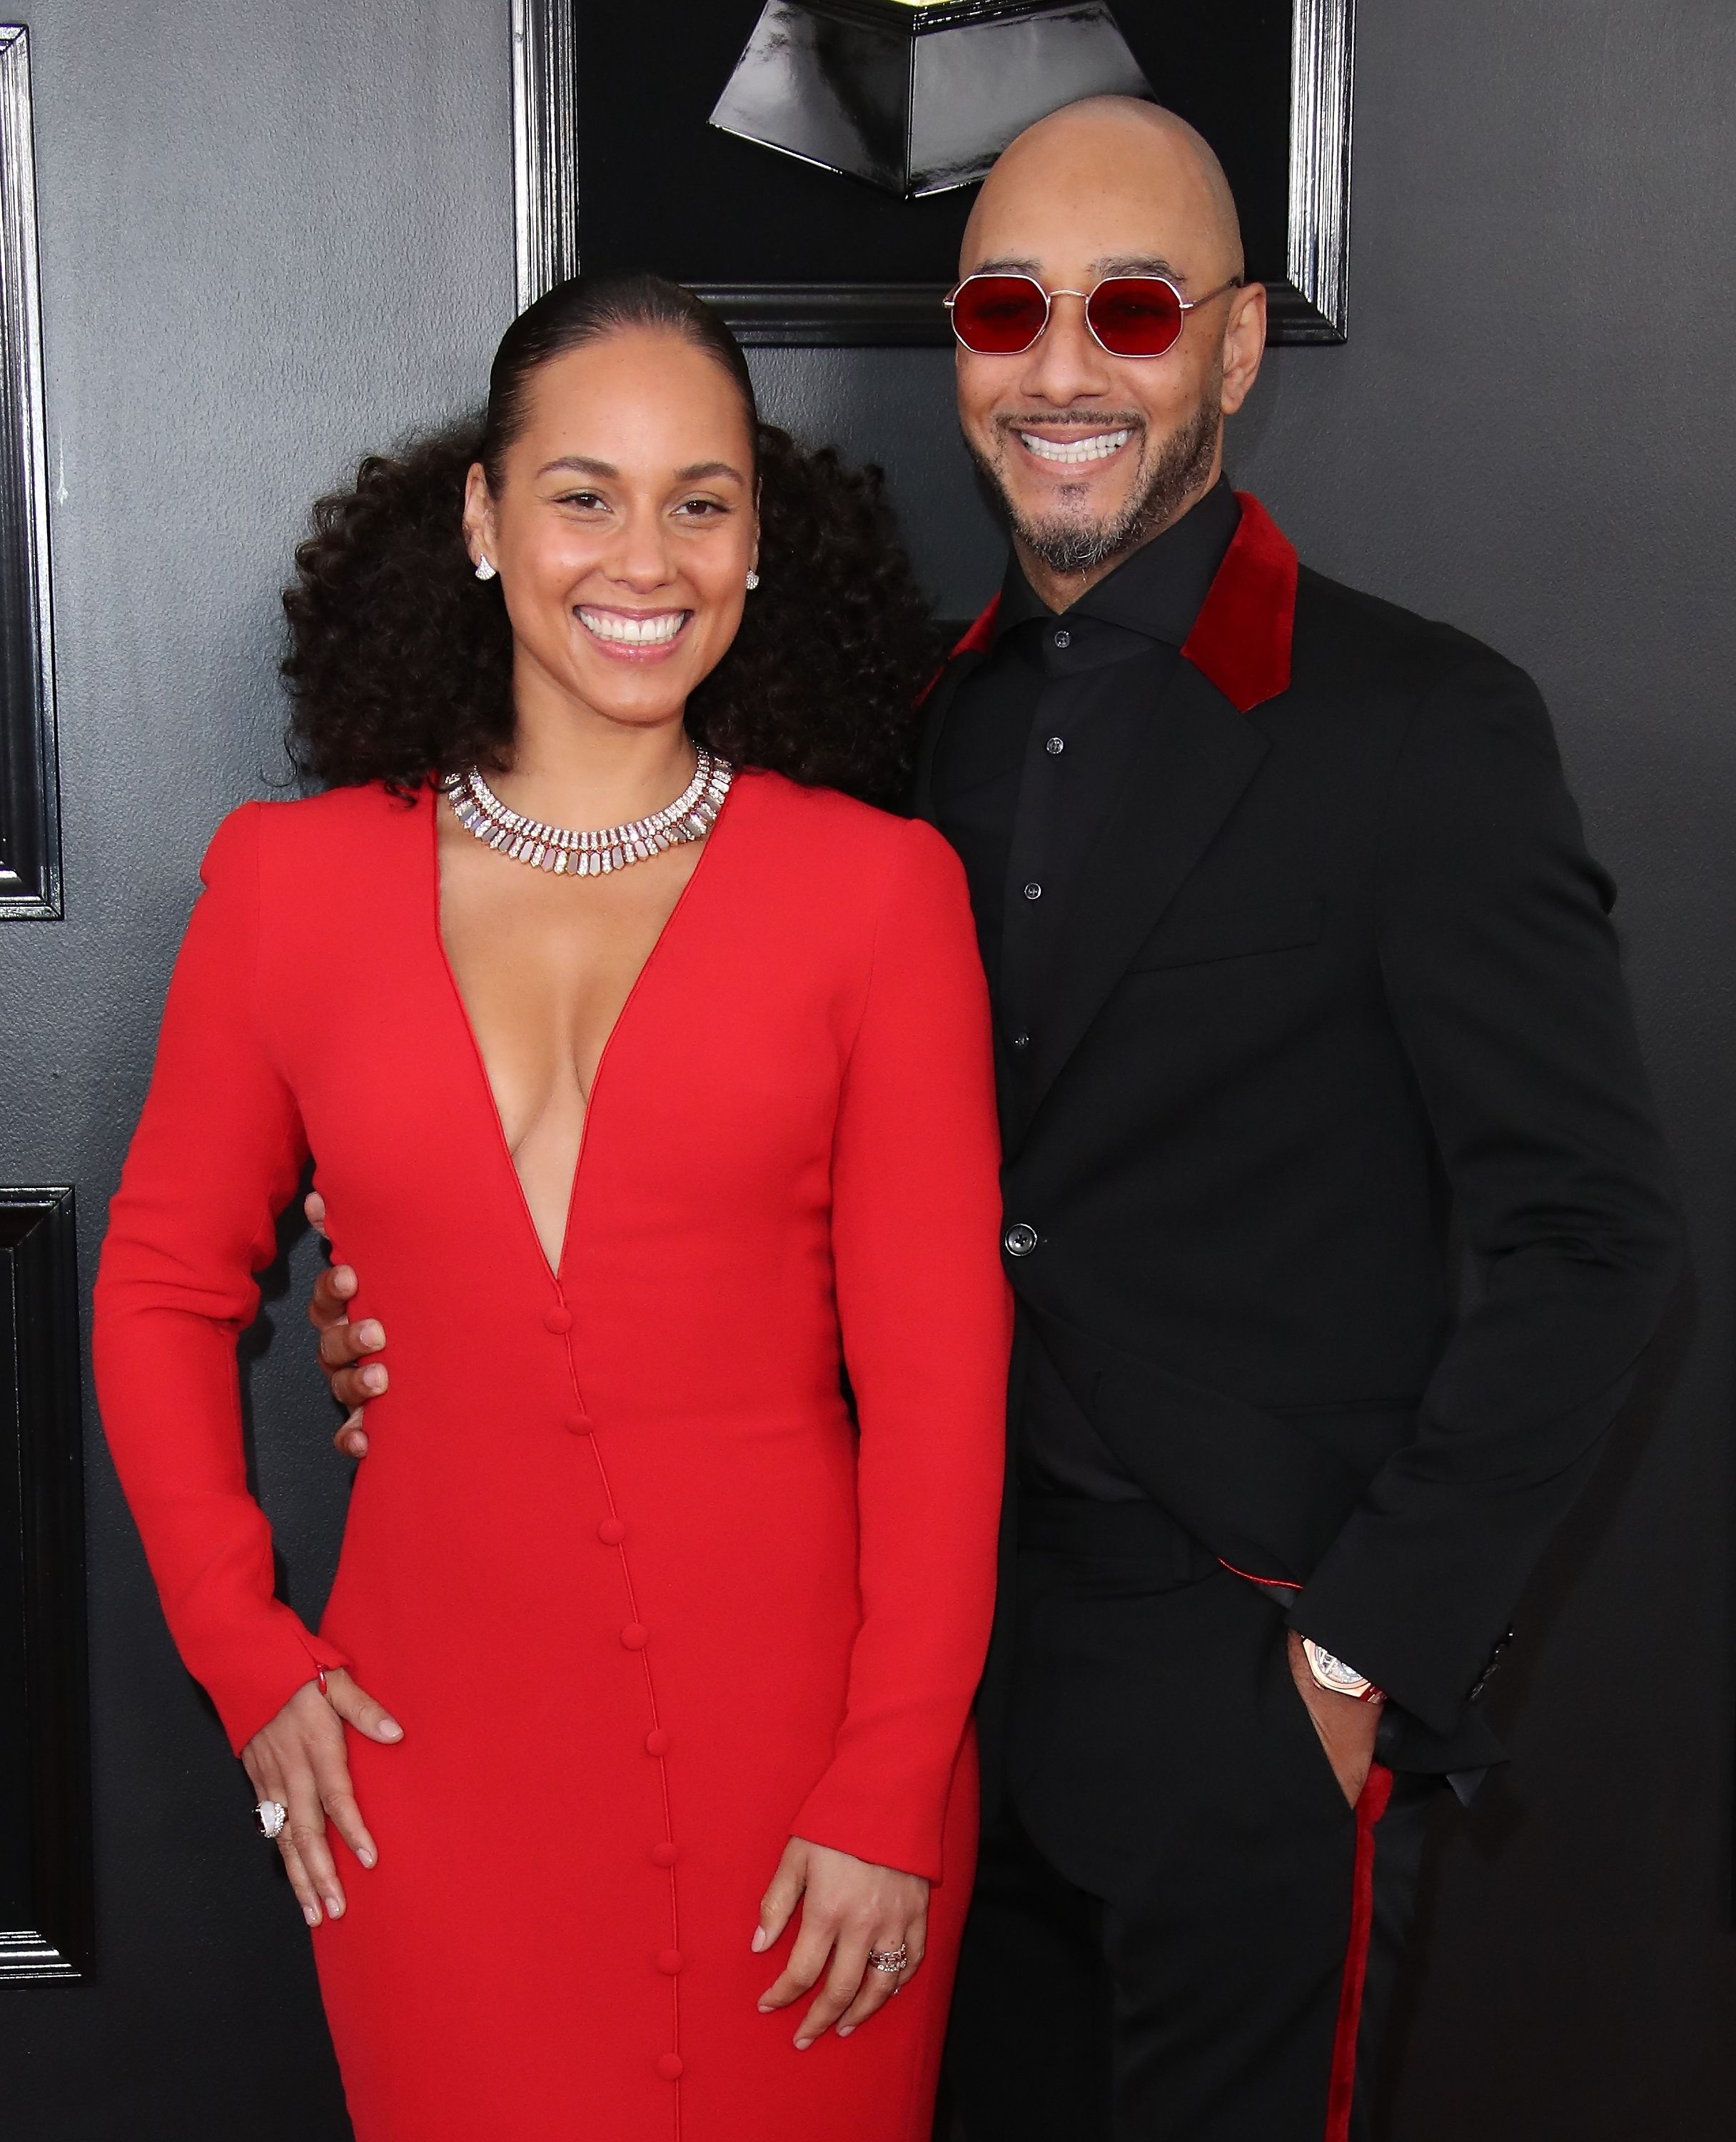 Alicia Keys and Swizz Beatz at the 61st Annual Grammy Awards at Staples Center on February 10, 2019   Photo: Getty Images